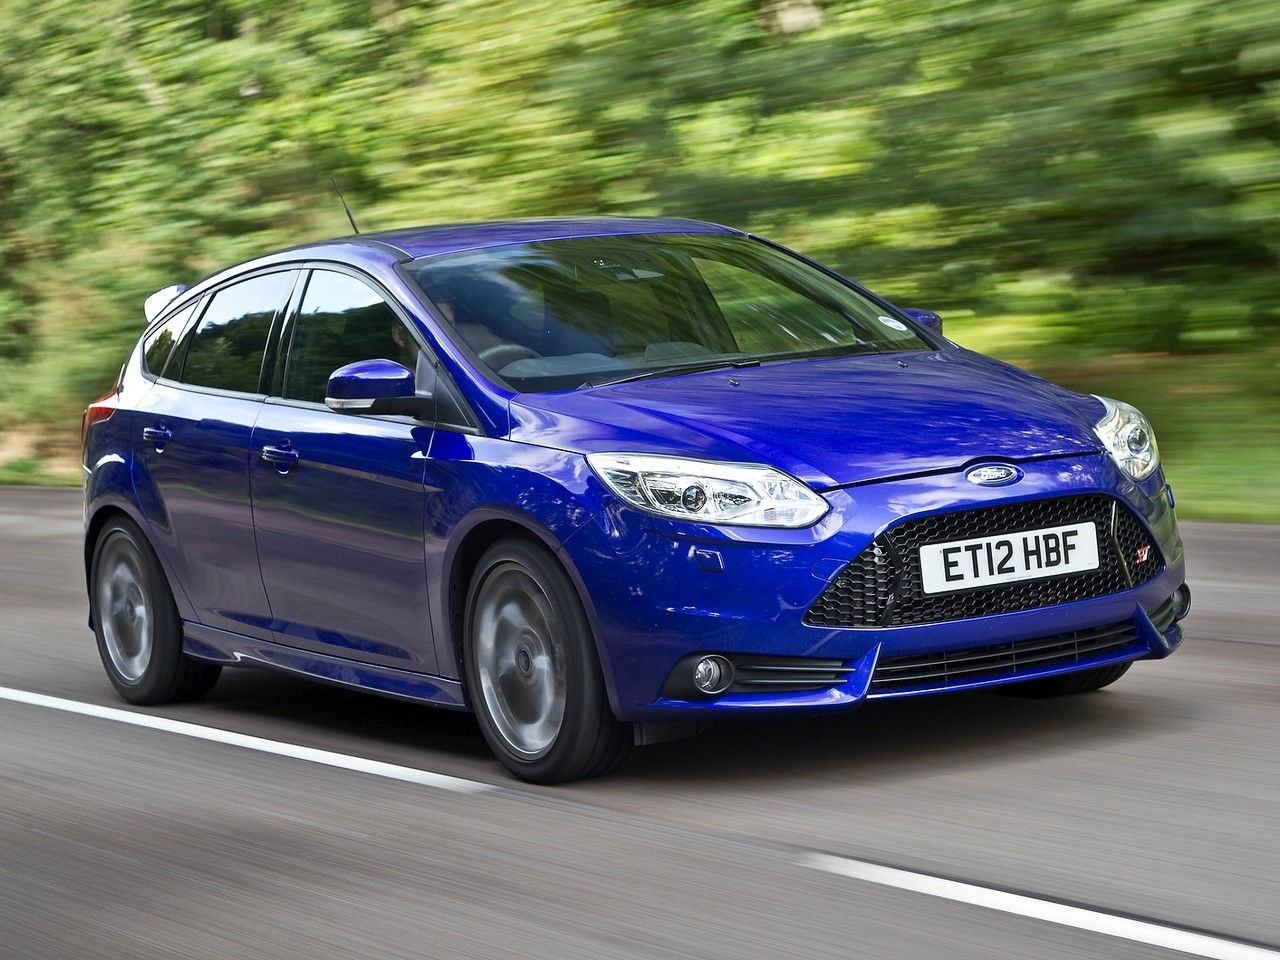 ford focus st 5 doors specs 2012 2013 2014 autoevolution. Black Bedroom Furniture Sets. Home Design Ideas